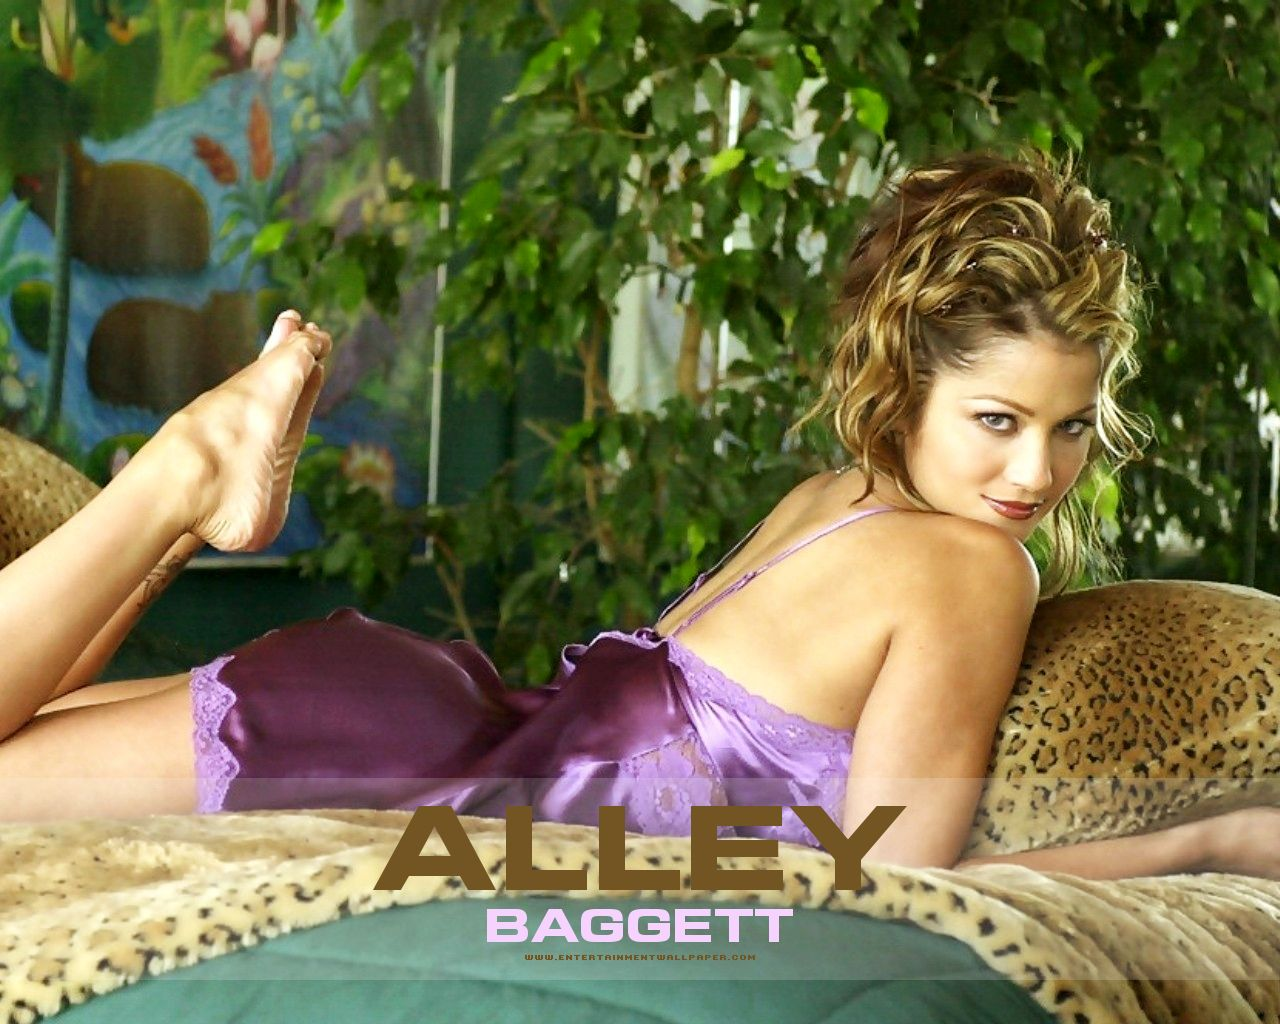 Alley Baggett